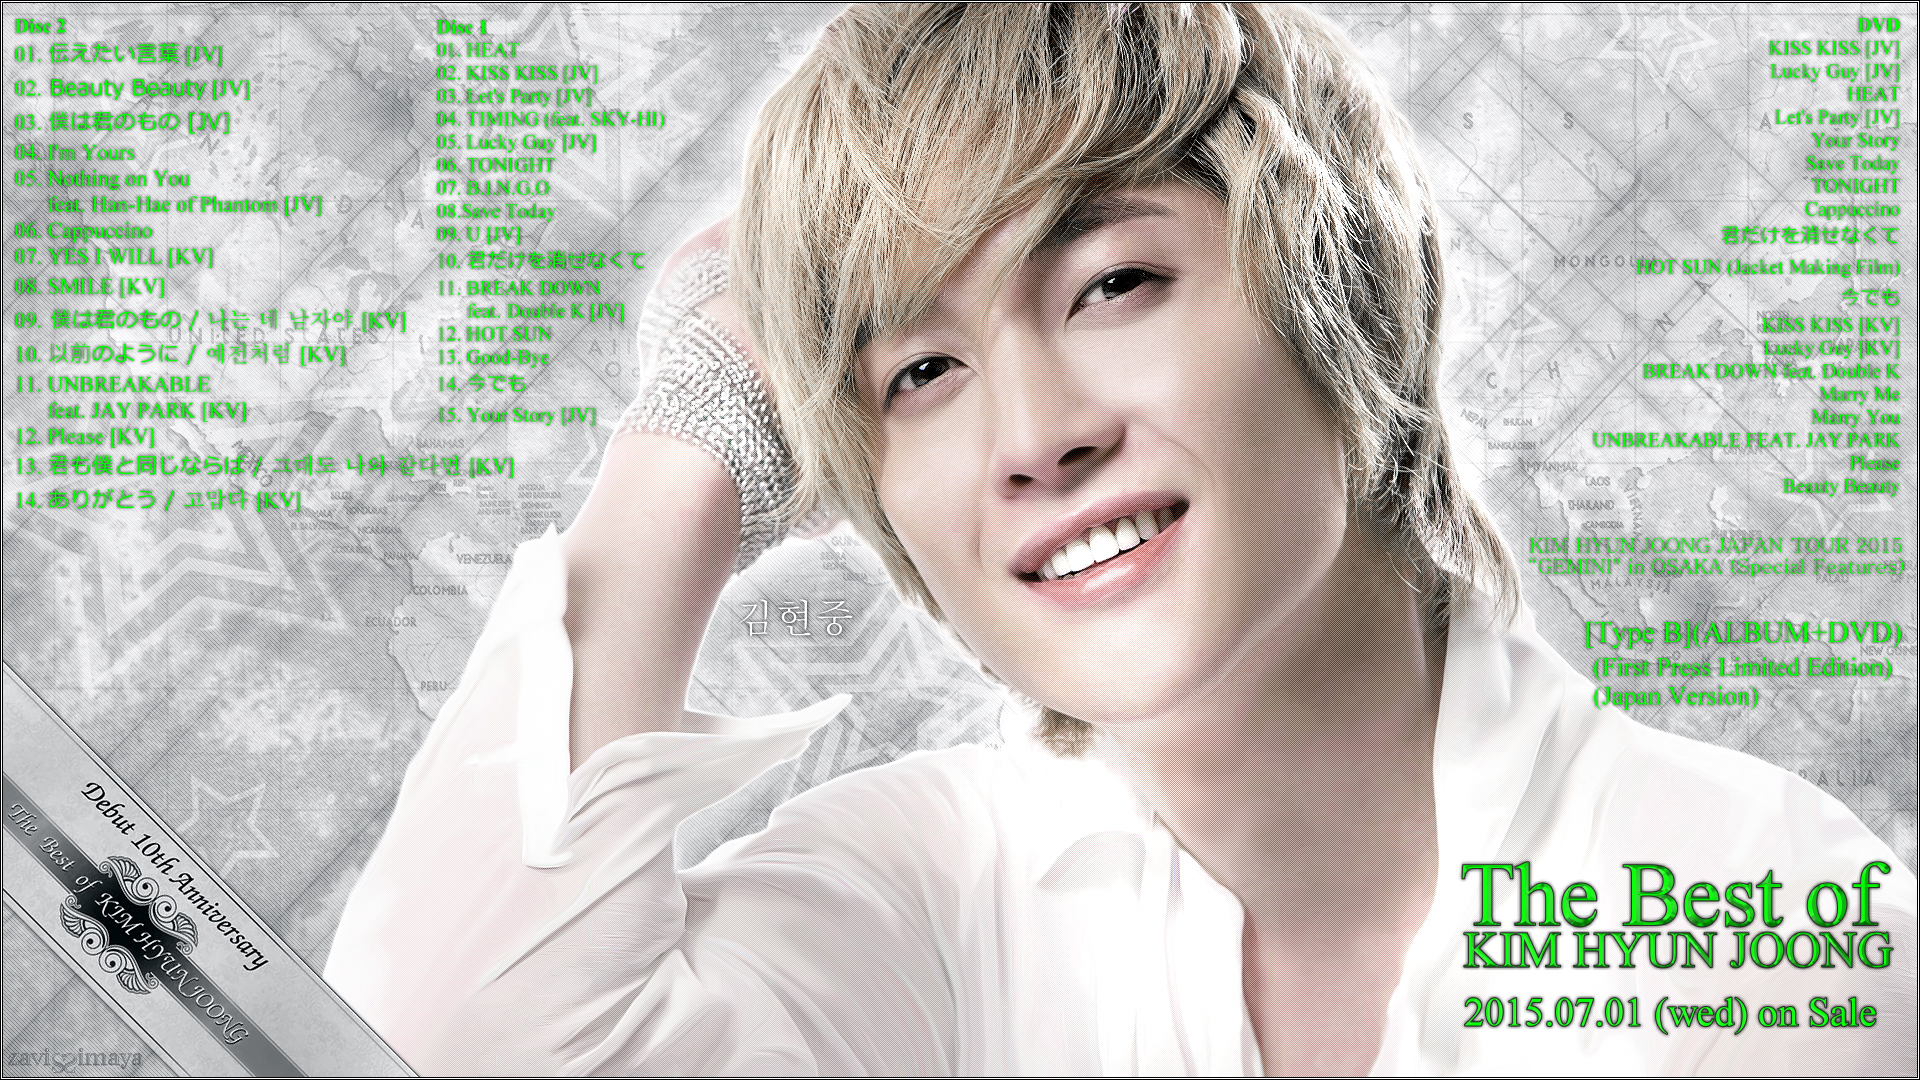 Graphic Photo of Hyun Joong 2015.08